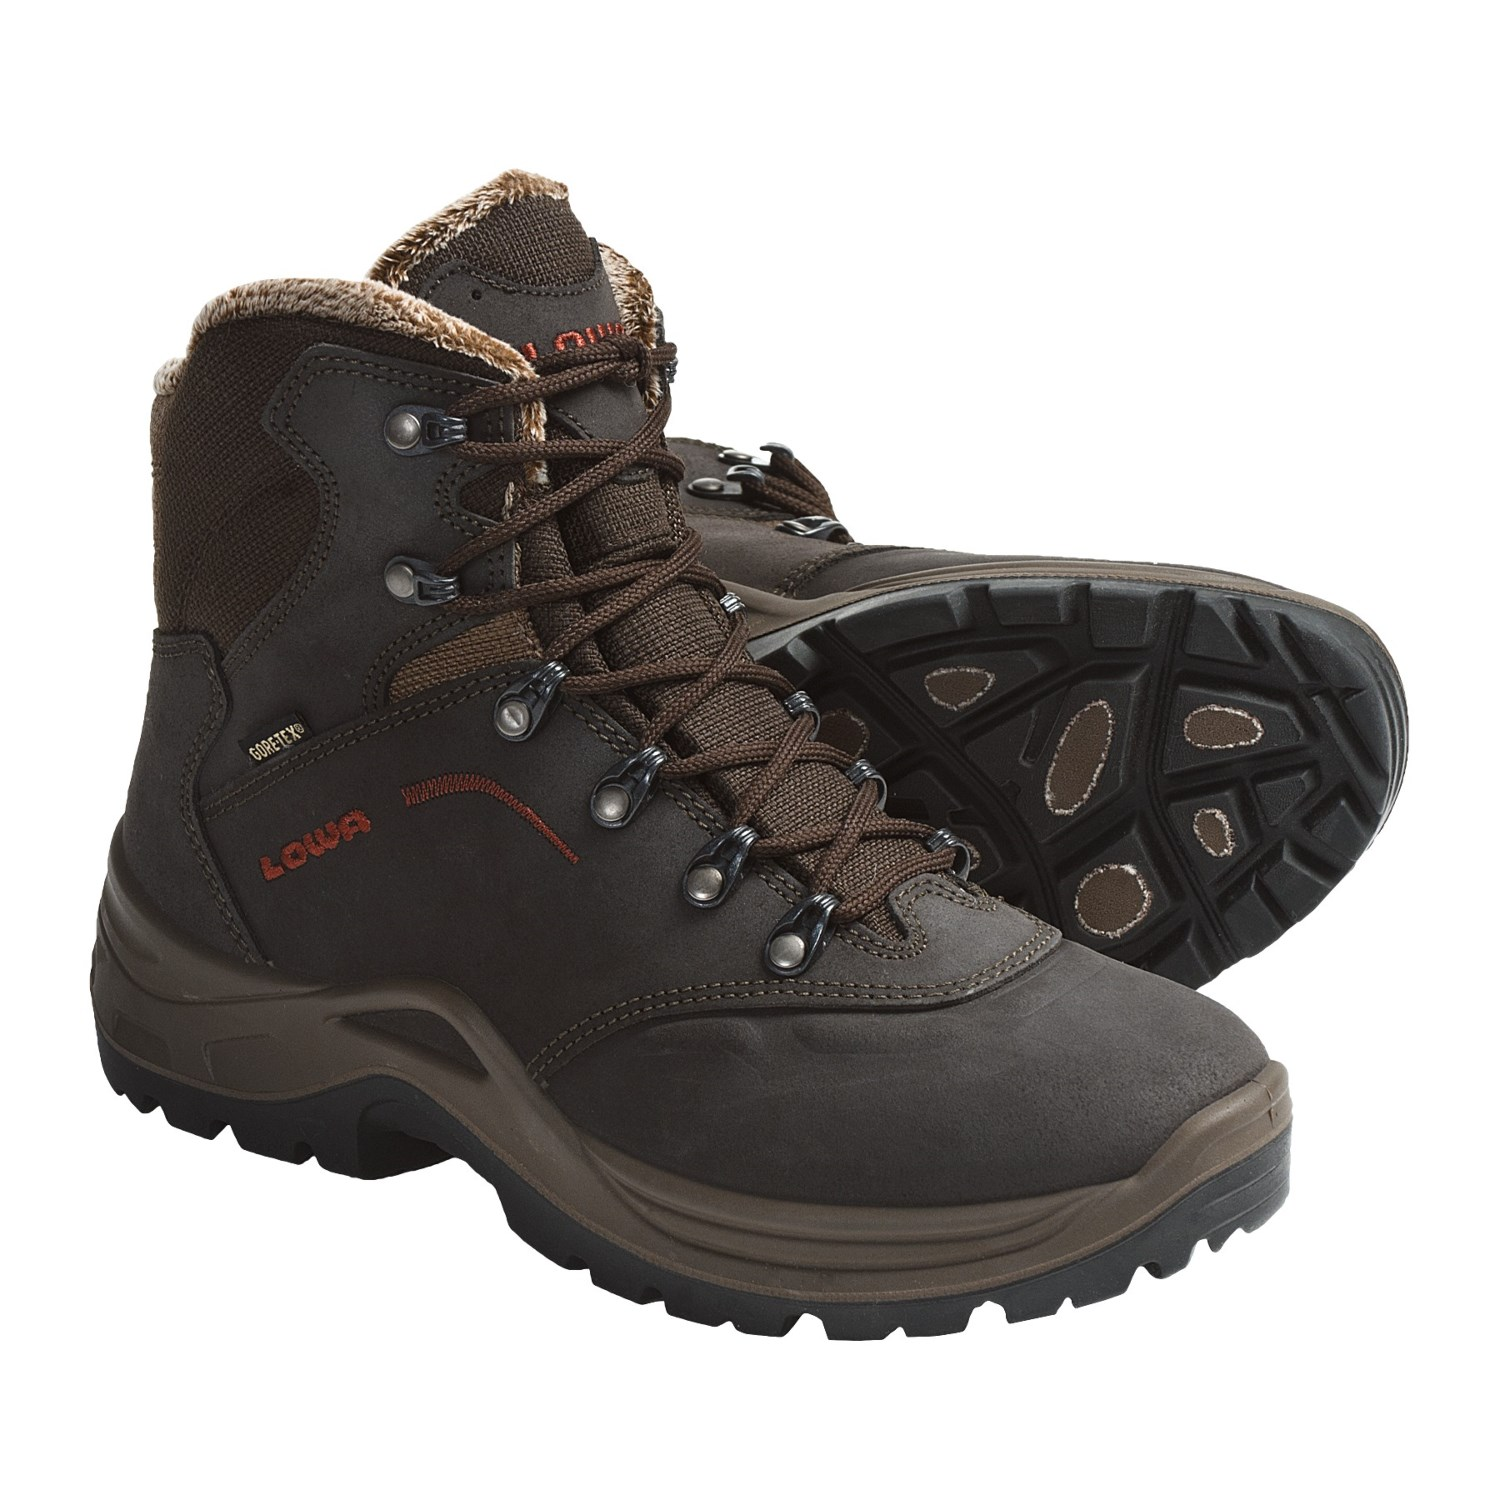 Lastest Merrell Womens Crestbound Gore-Tex Boot | Cotswold Outdoor